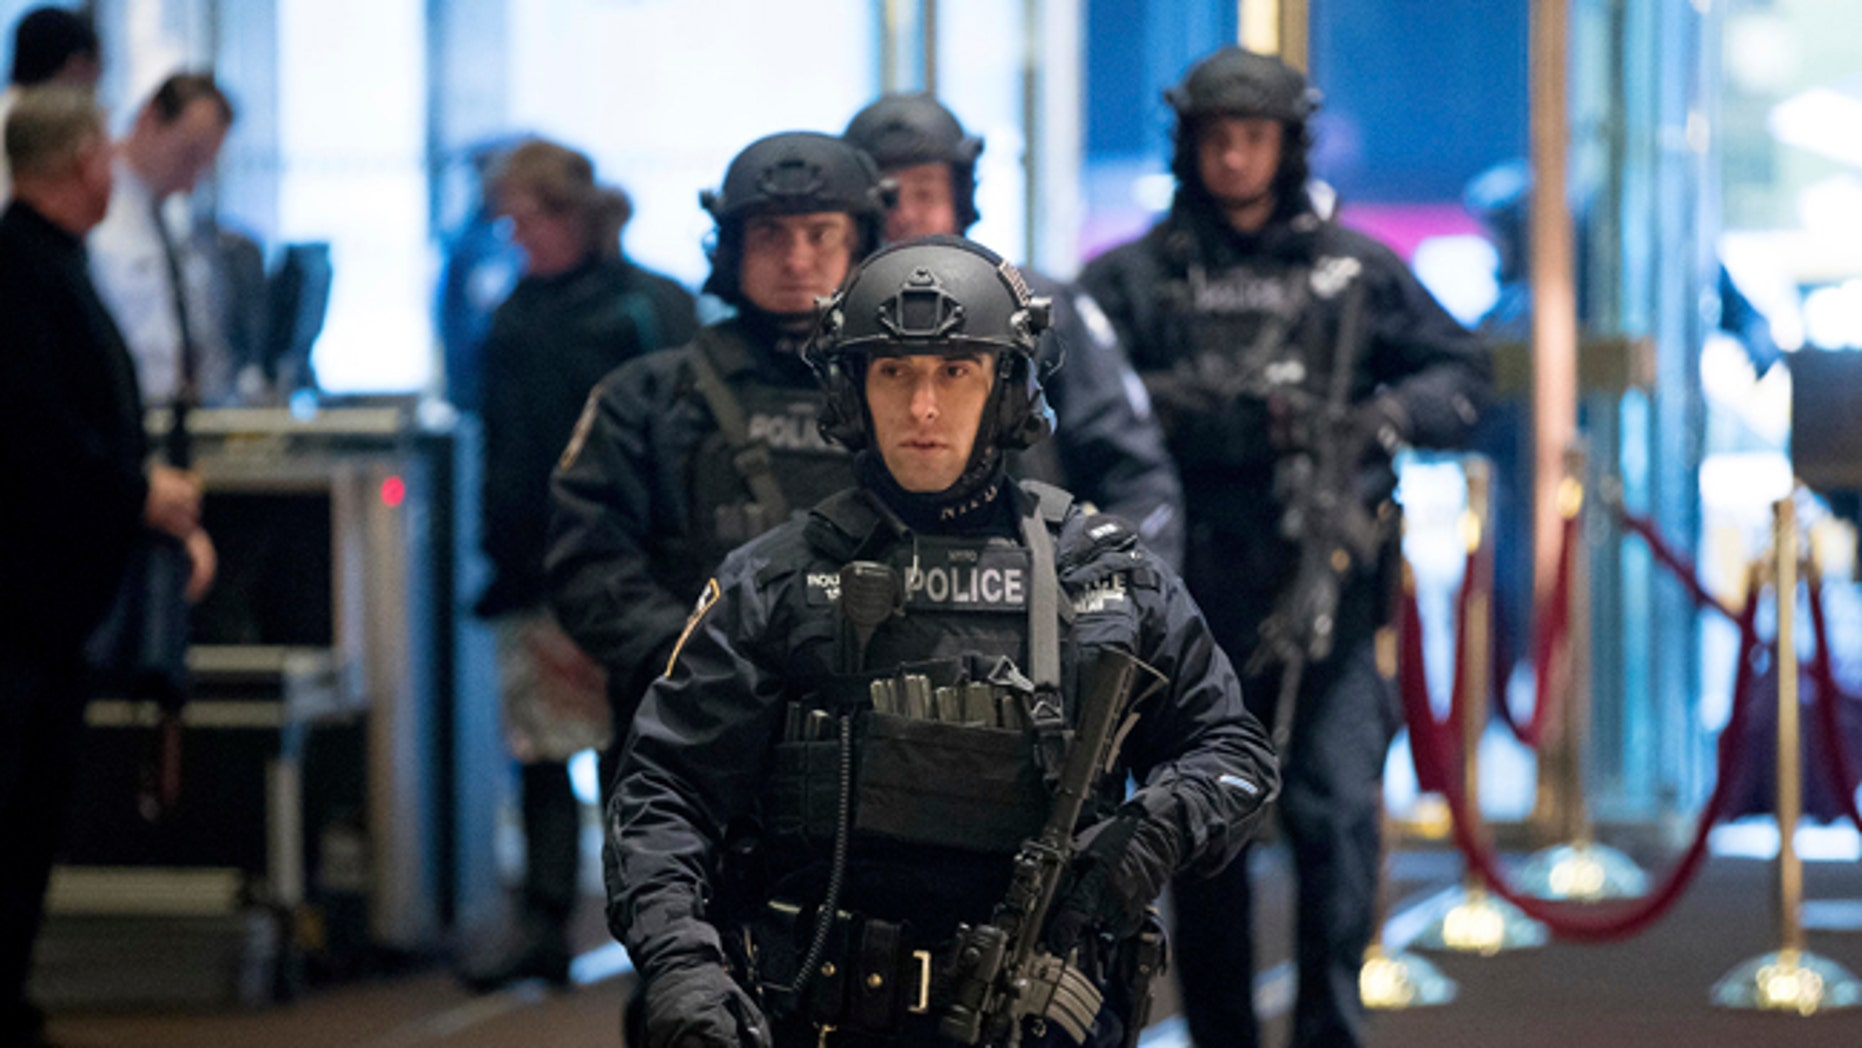 Police officers walk through the lobby of Trump Tower in New York City.